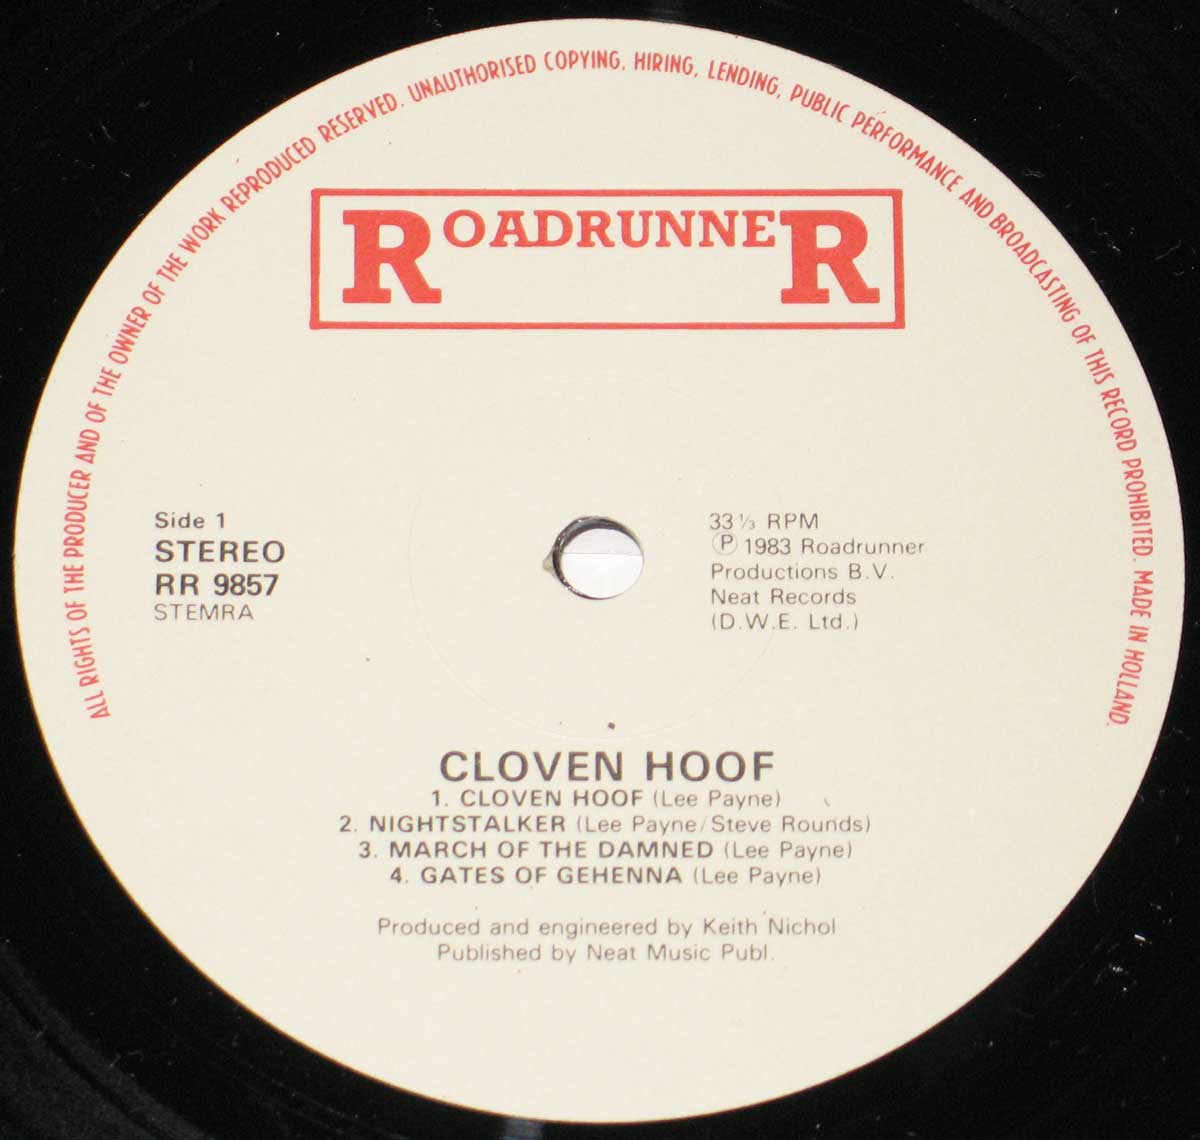 Enlarged High Resolution Photo of the Record's label CLOVEN HOOF Self-Titled https://vinyl-records.nl